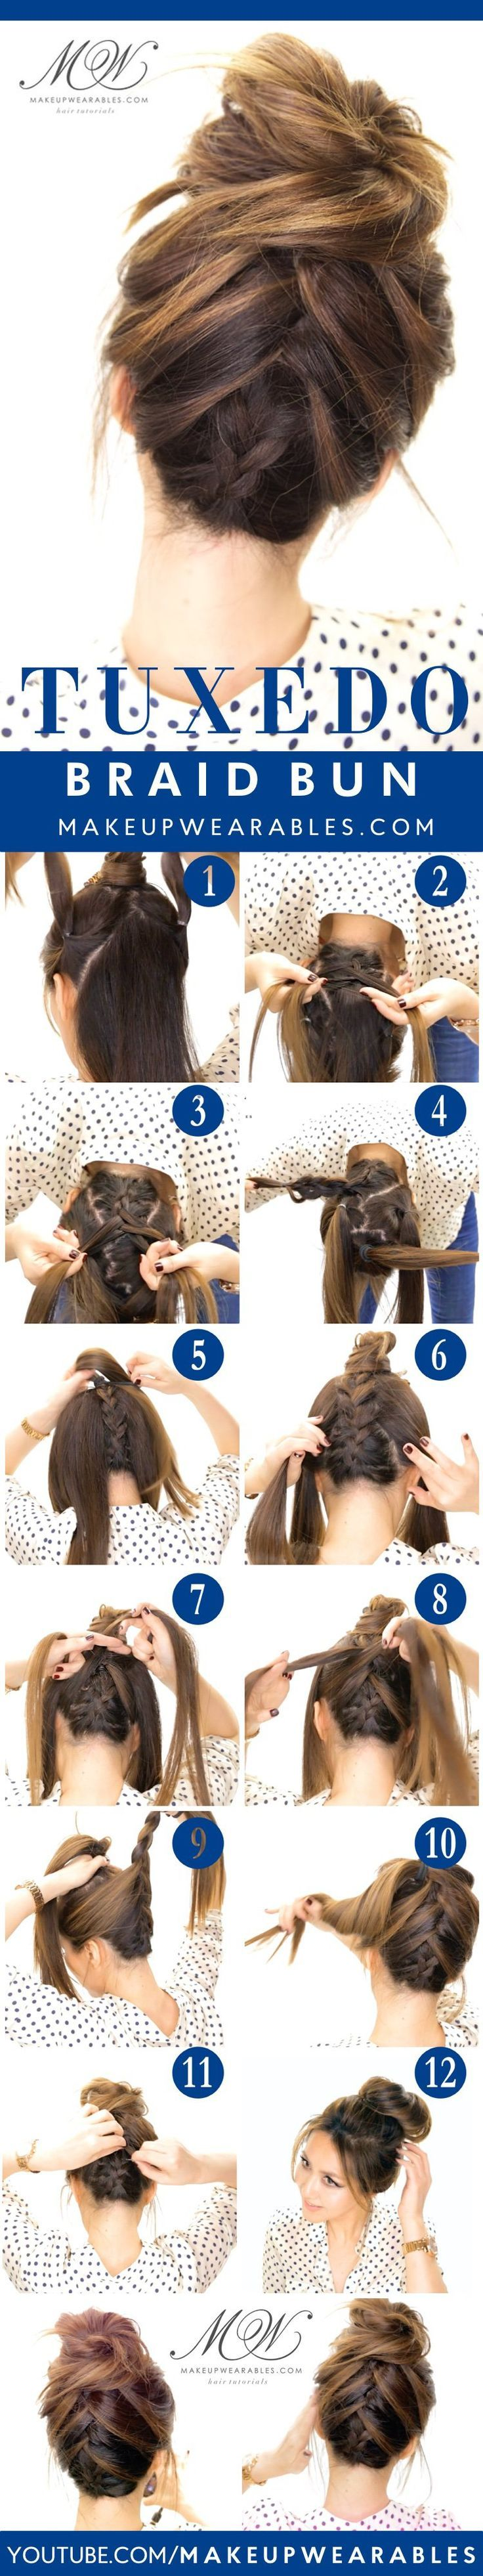 nice 5 Gorgeous Messy Updos For Long Hair   Makeup Tutorials by http://www.danazhaircuts.xyz/hair-tutorials/5-gorgeous-messy-updos-for-long-hair-makeup-tutorials/